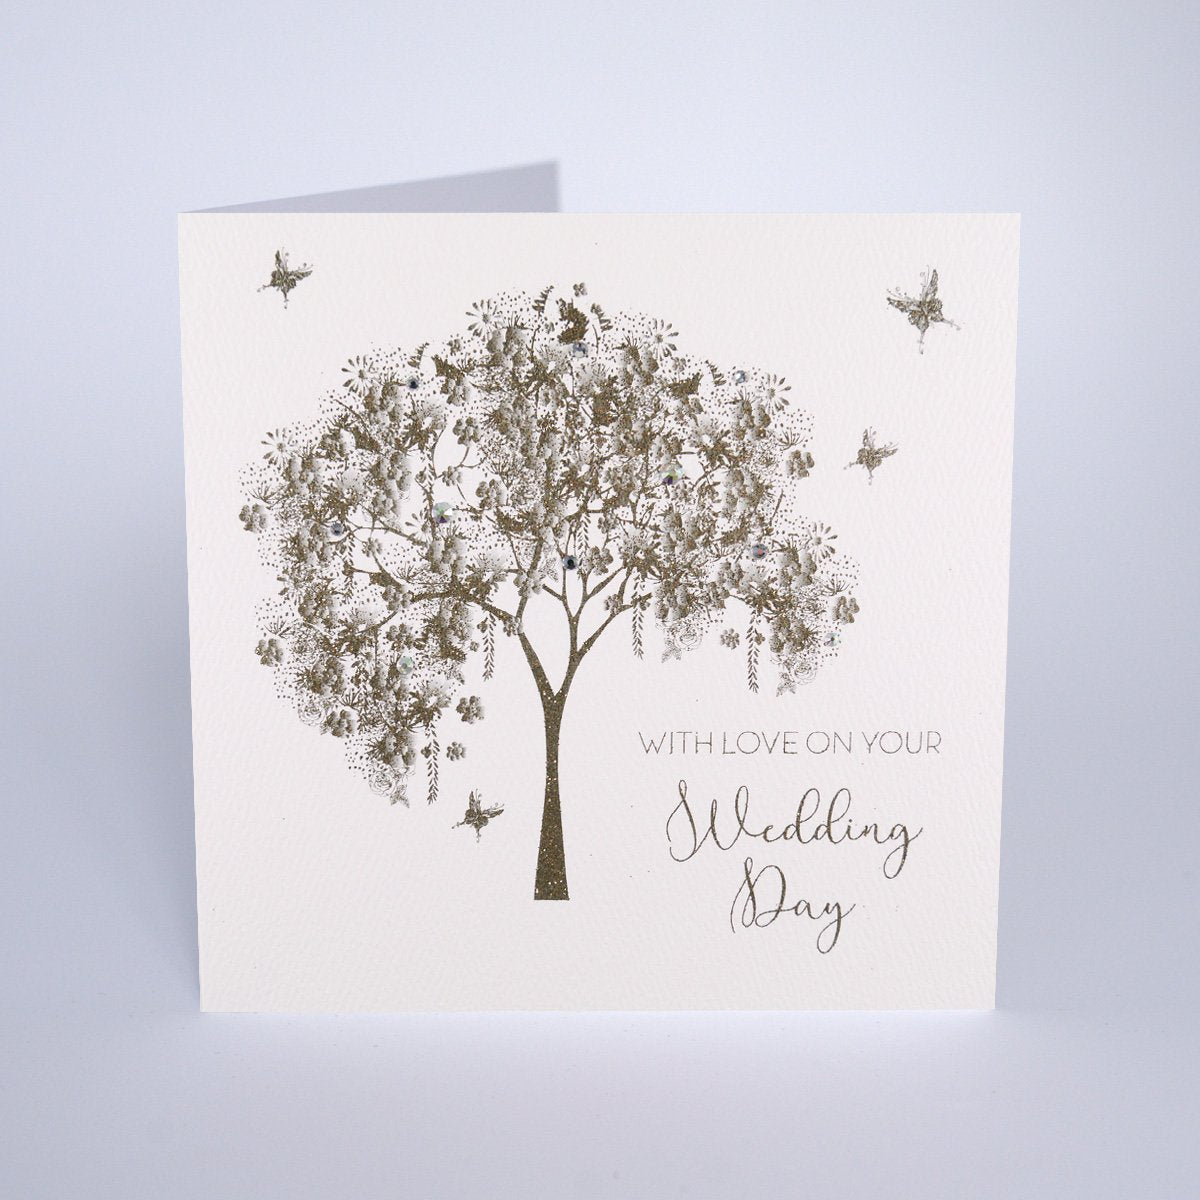 The Secret Garden With Love on Your Wedding Day Card